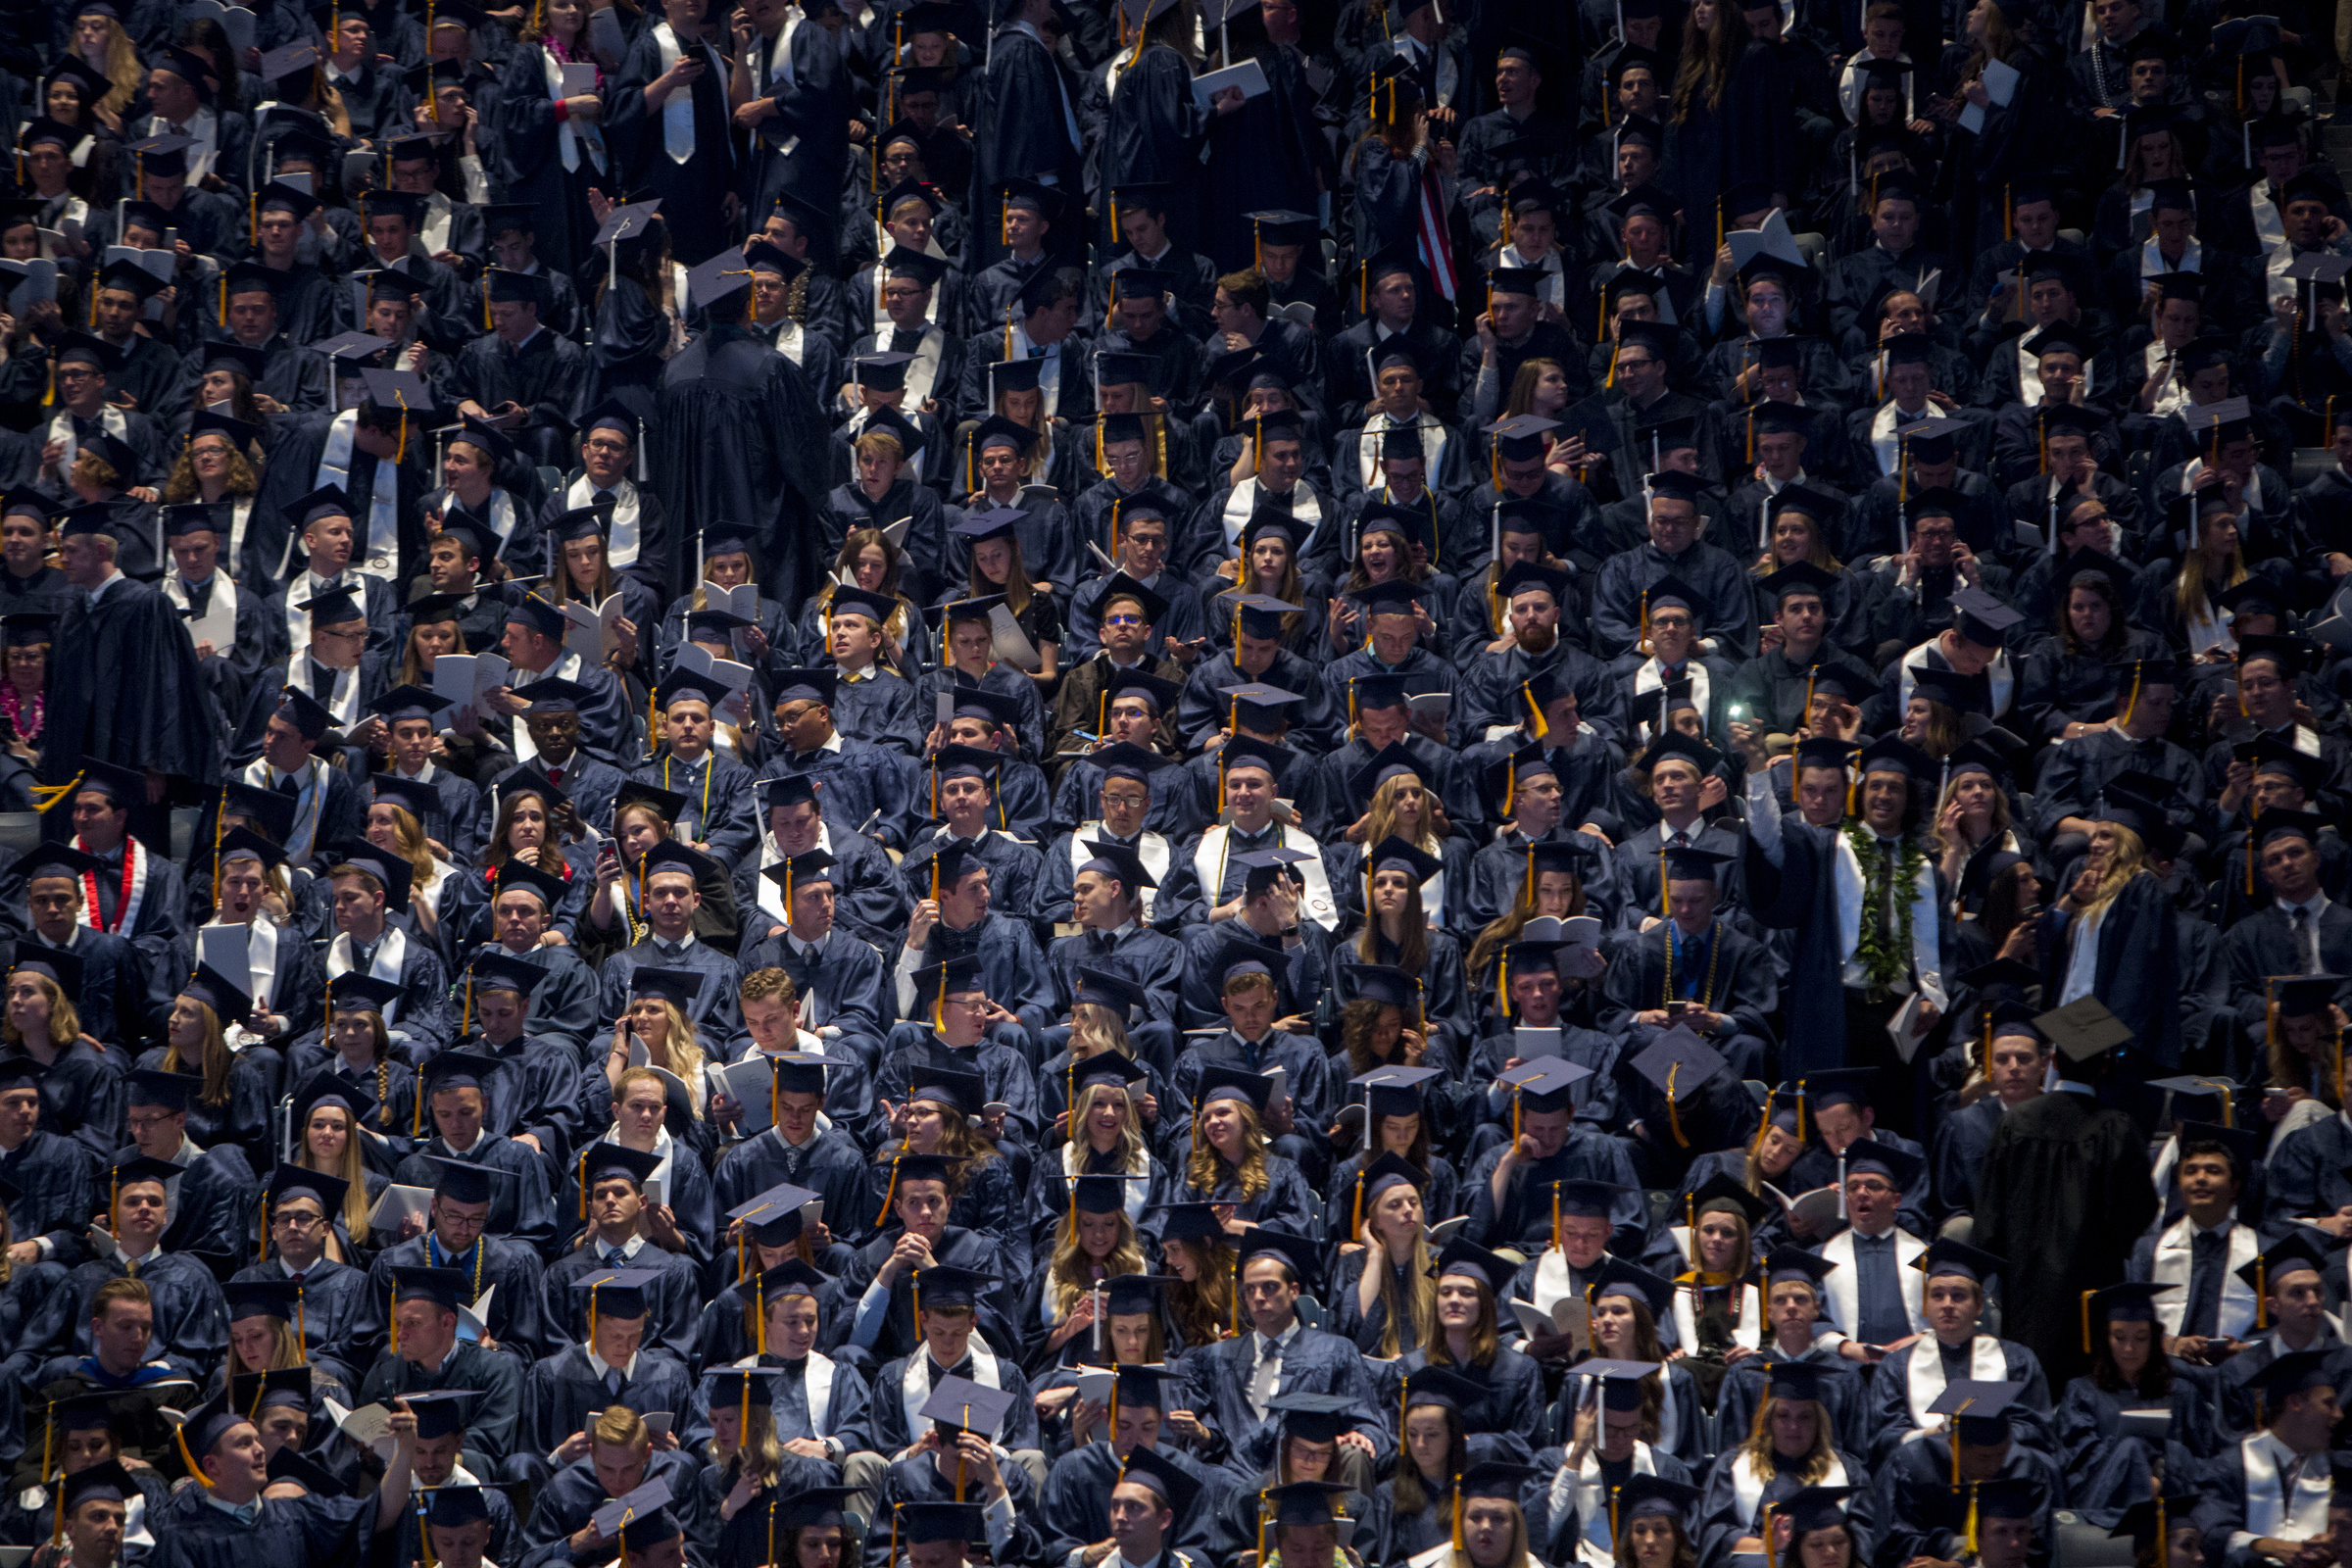 Graduates wait for the start of Brigham Young University's commencement ceremony in the Marriott Center on Thursday, April 26, 2018, in Provo. BYU is awarding nearly 6,300 degrees to graduates this week.